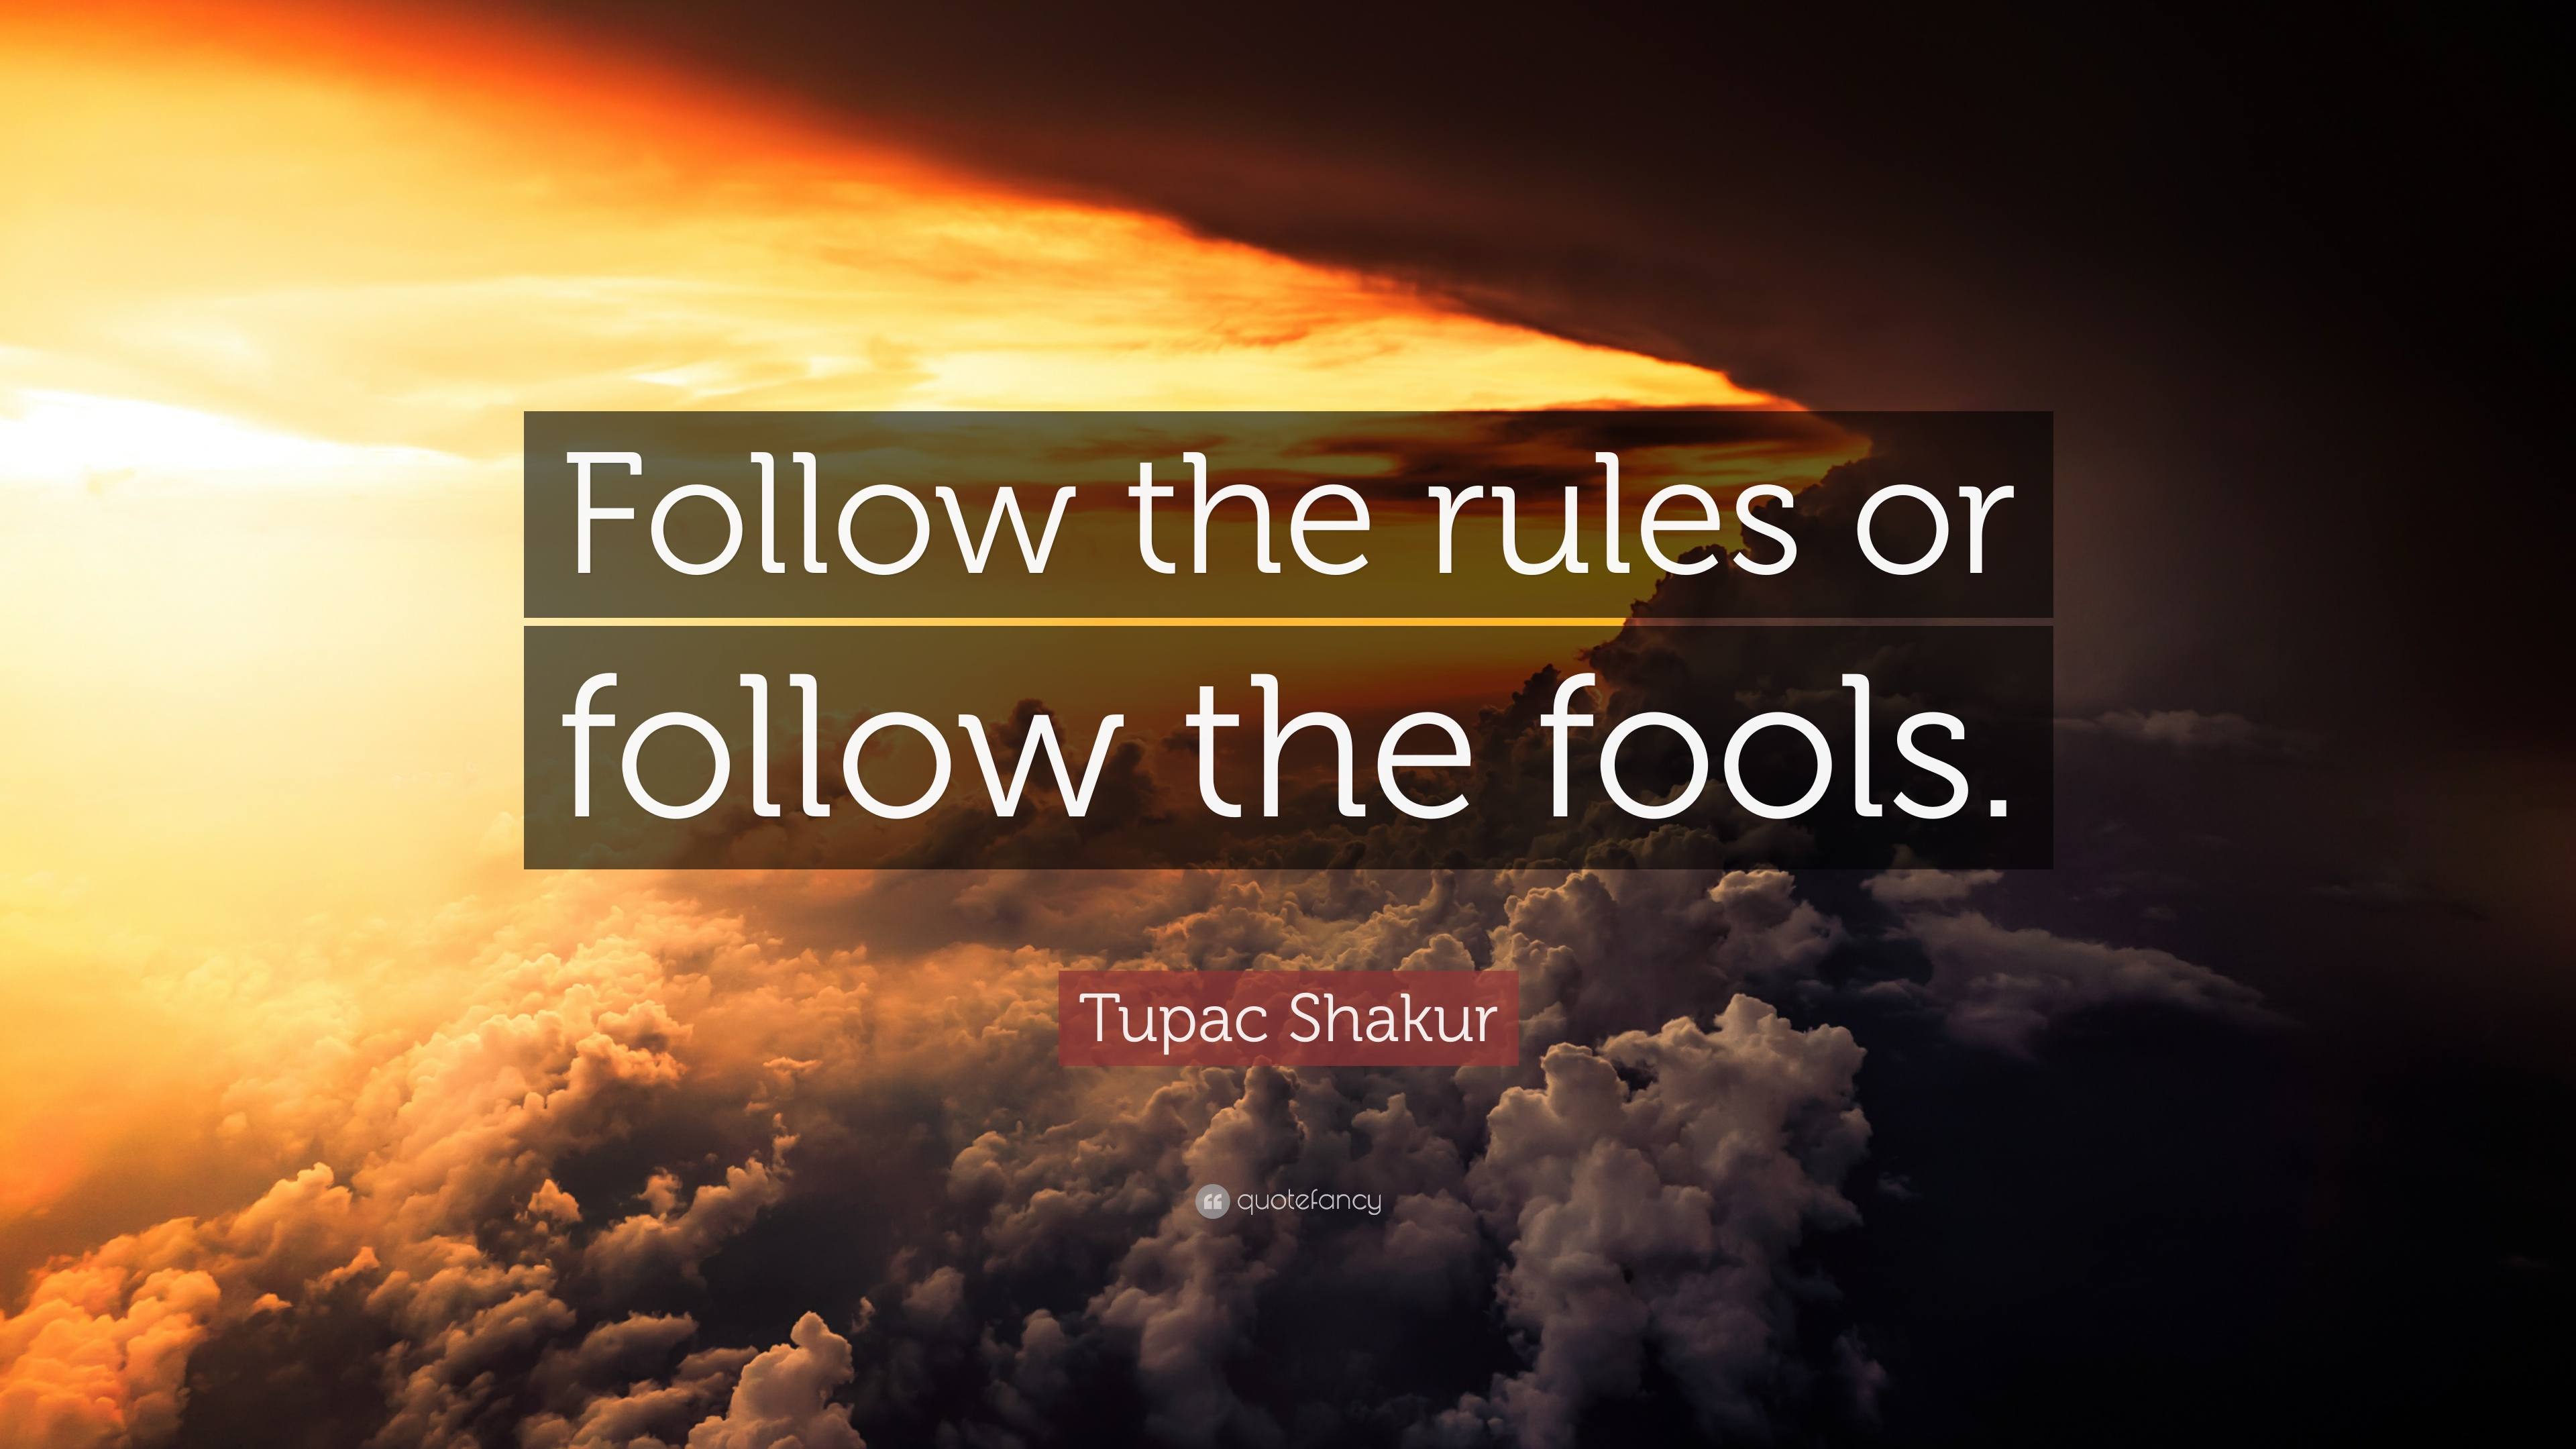 Tupac shakur quote follow the rules or follow the fools 12 wallpapers quotefancy - Follow wallpaper ...